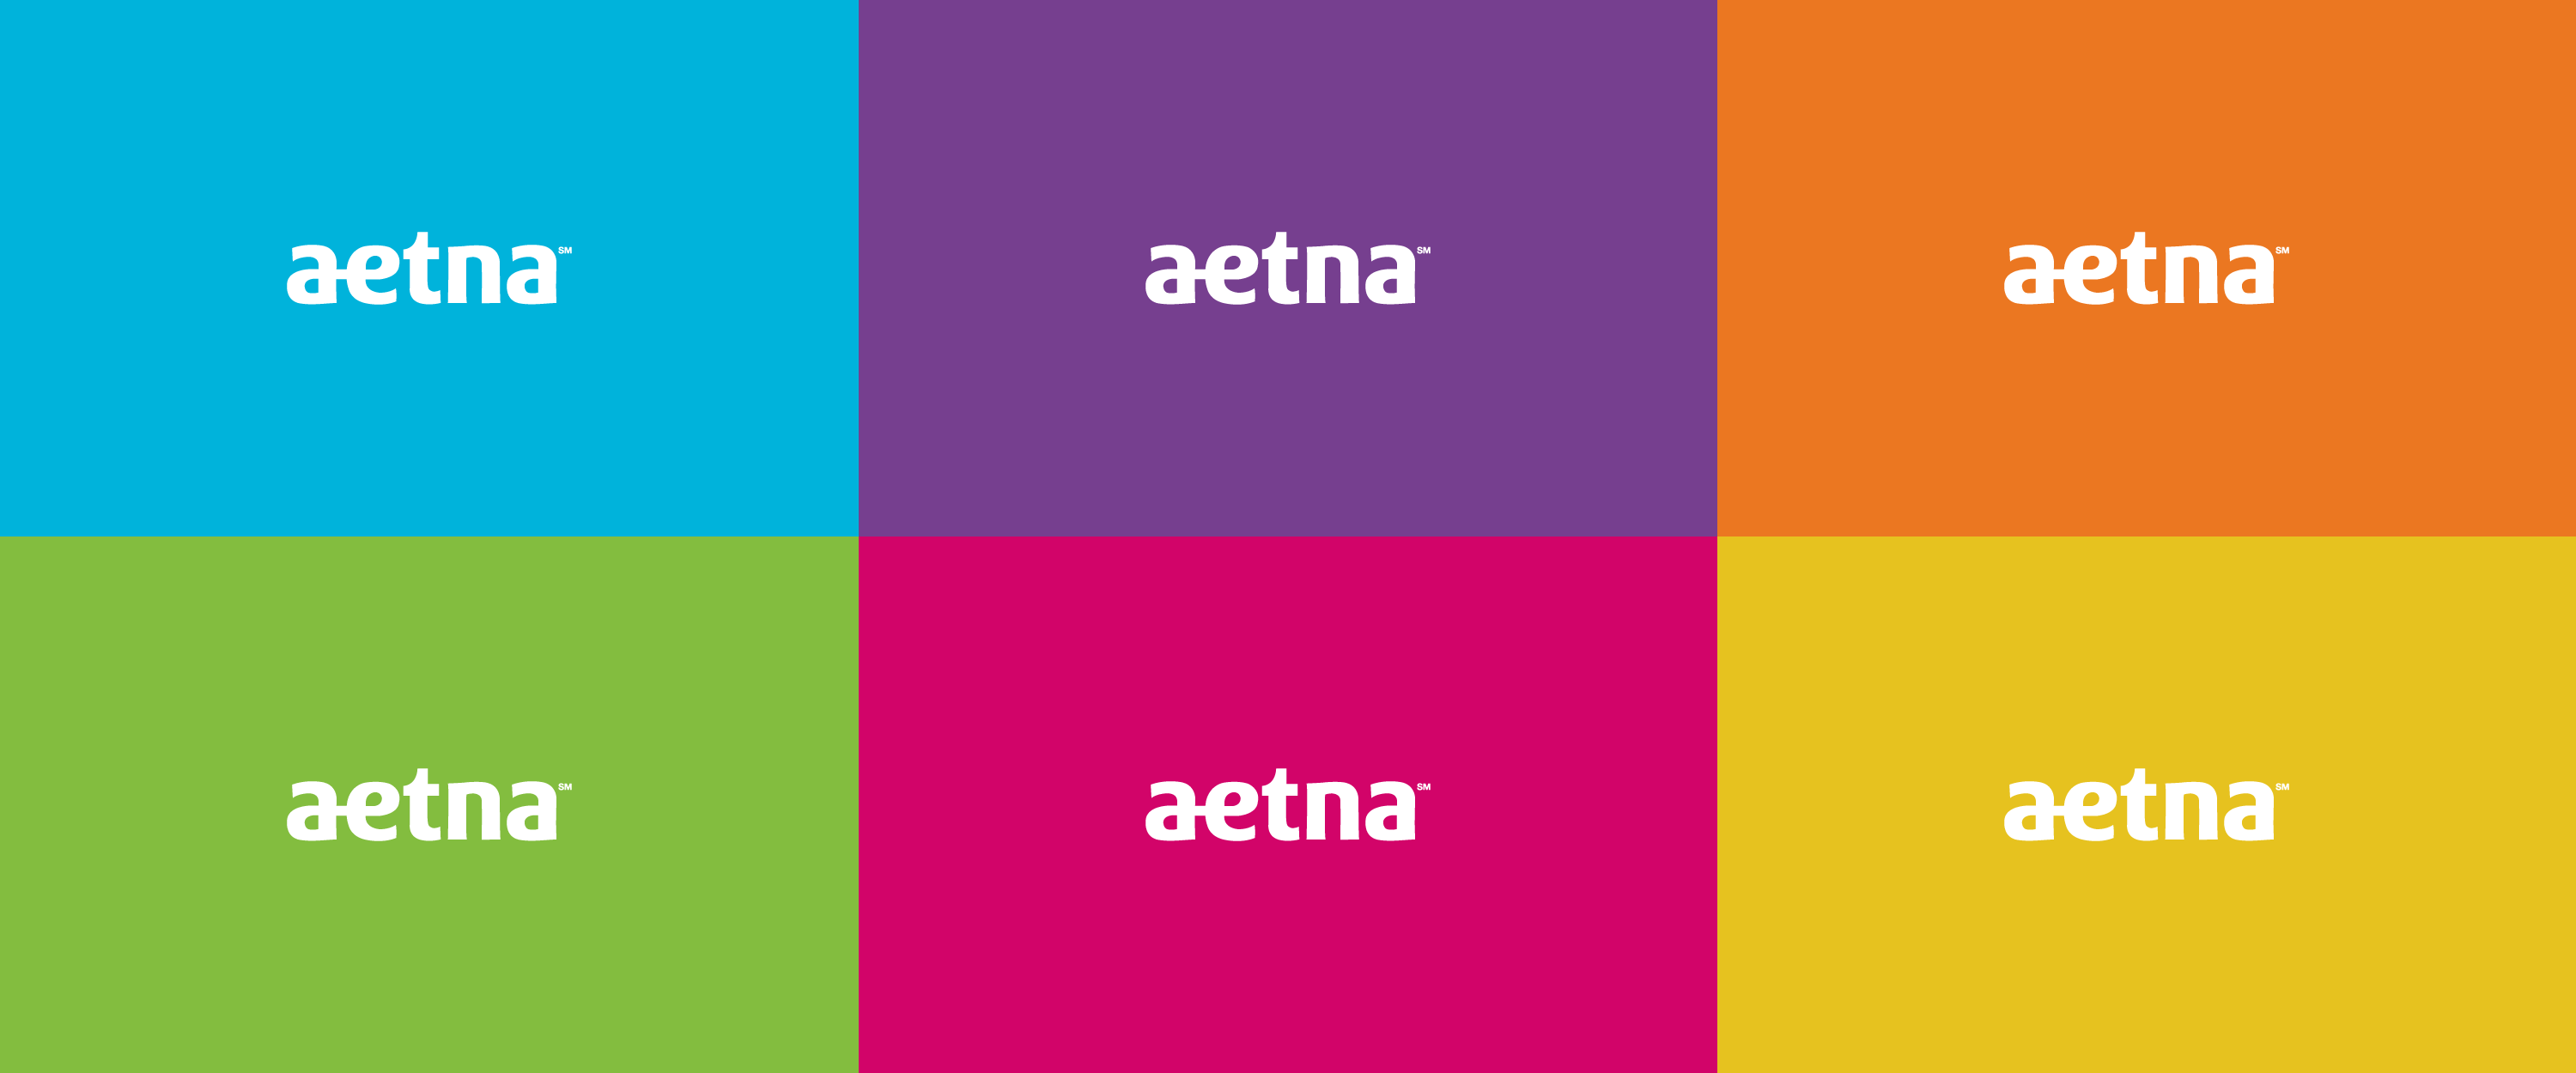 Aetna_Project2-05